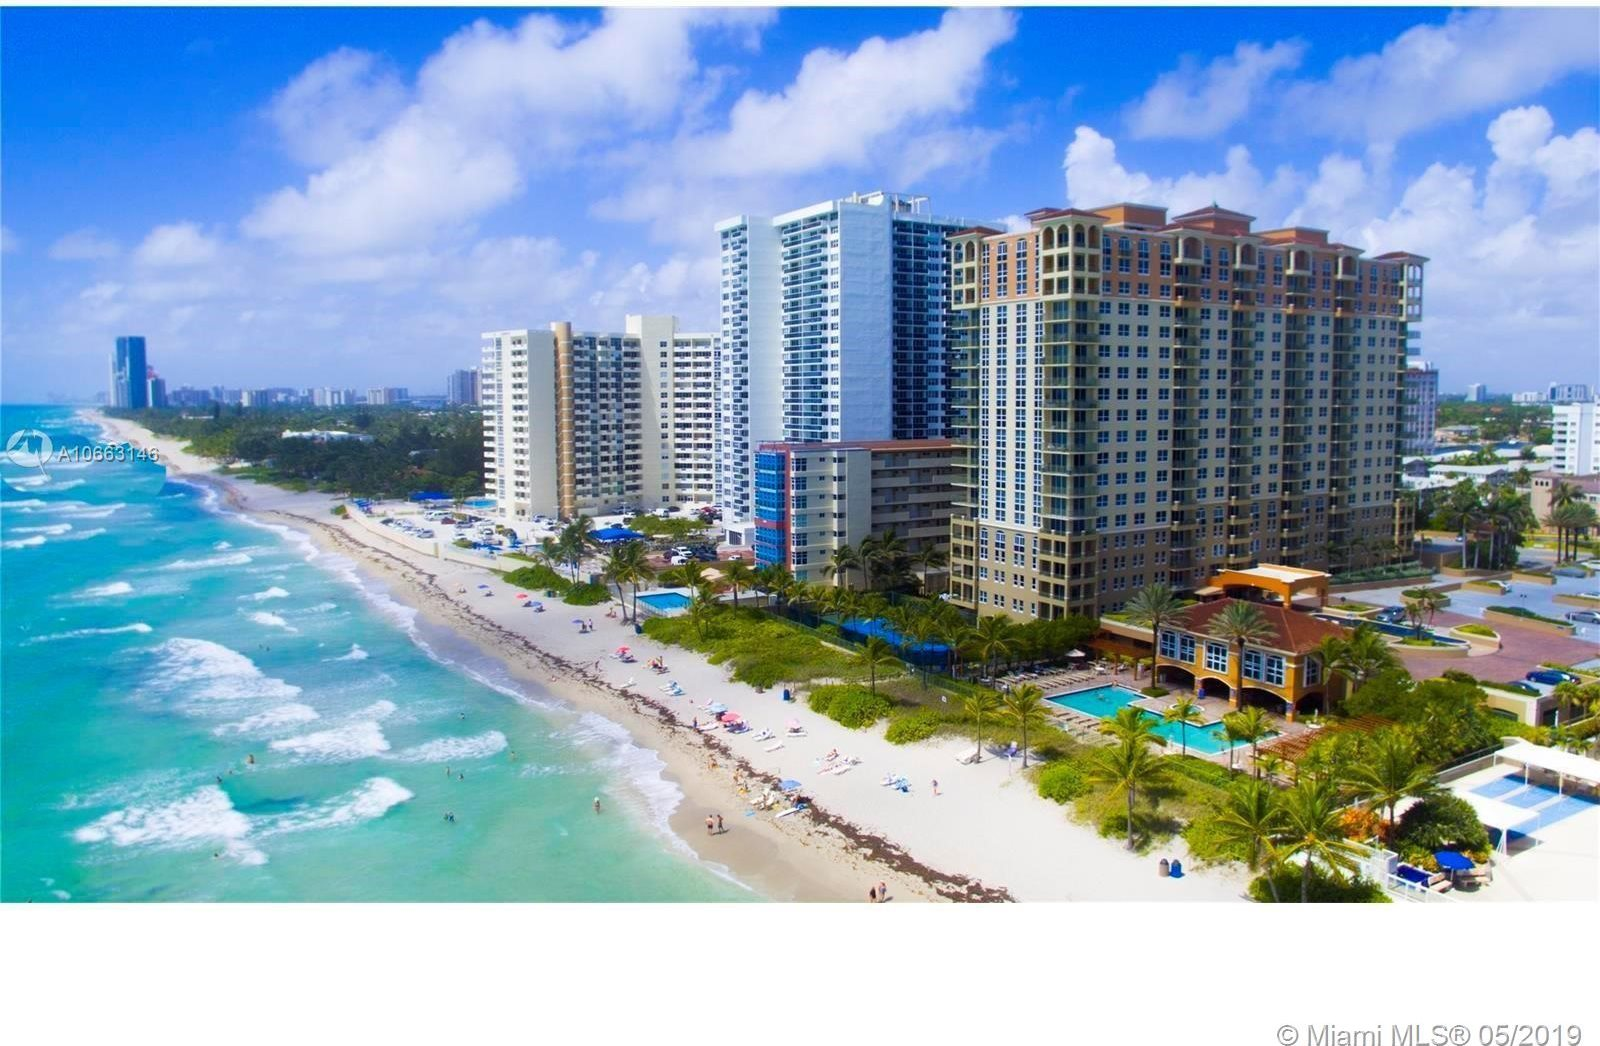 2080 South Ocean Dr., #912, Hallandale Beach, FL 33009